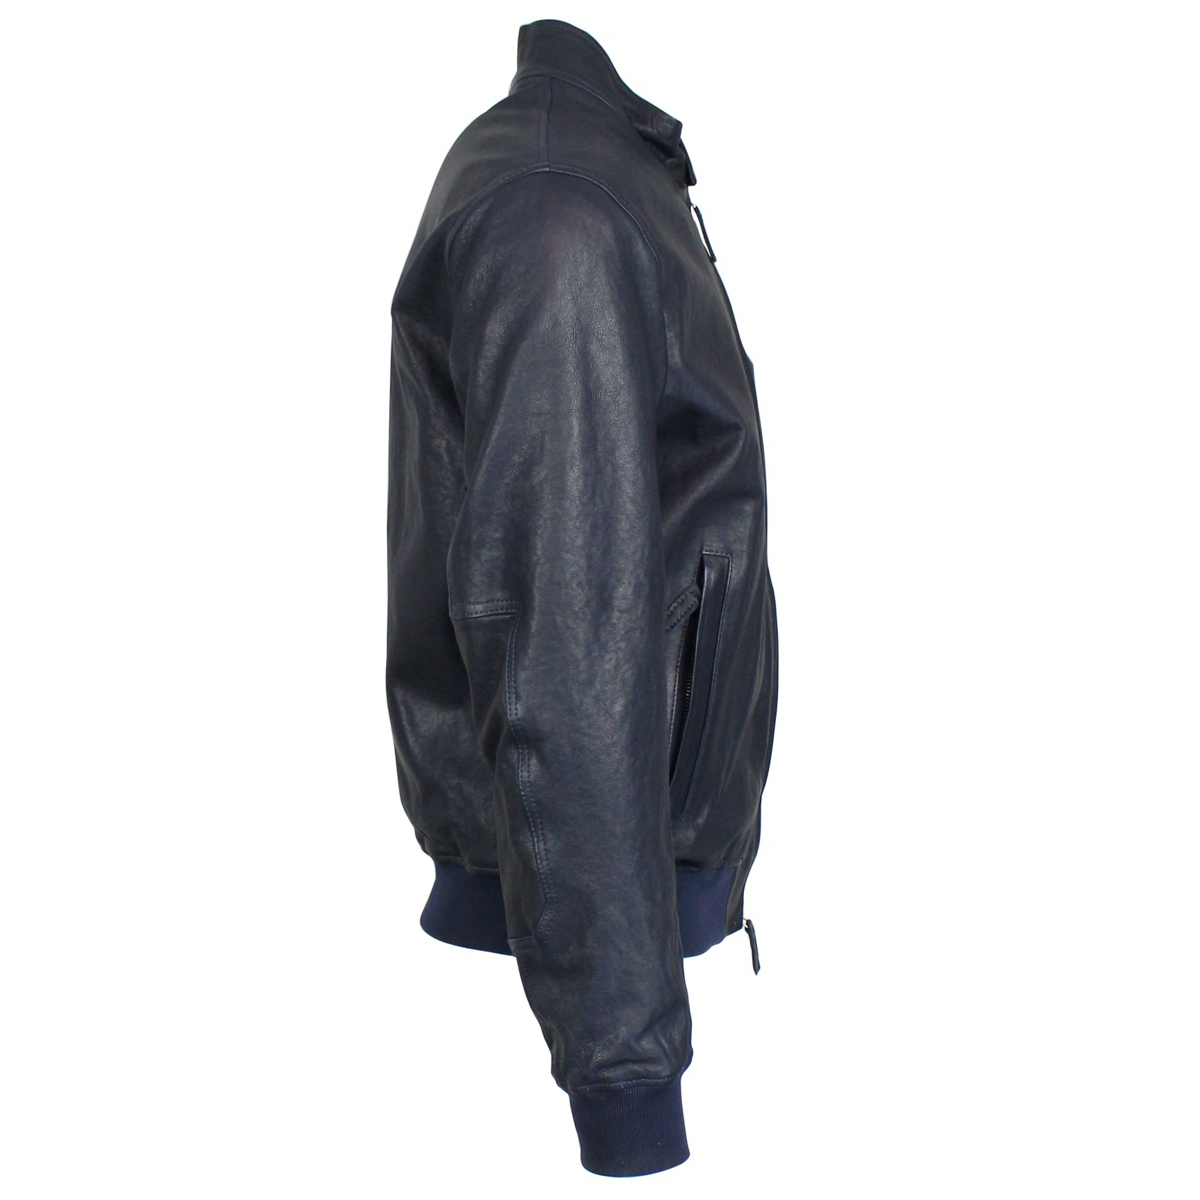 Full zip leather jacket Blue Jeckerson